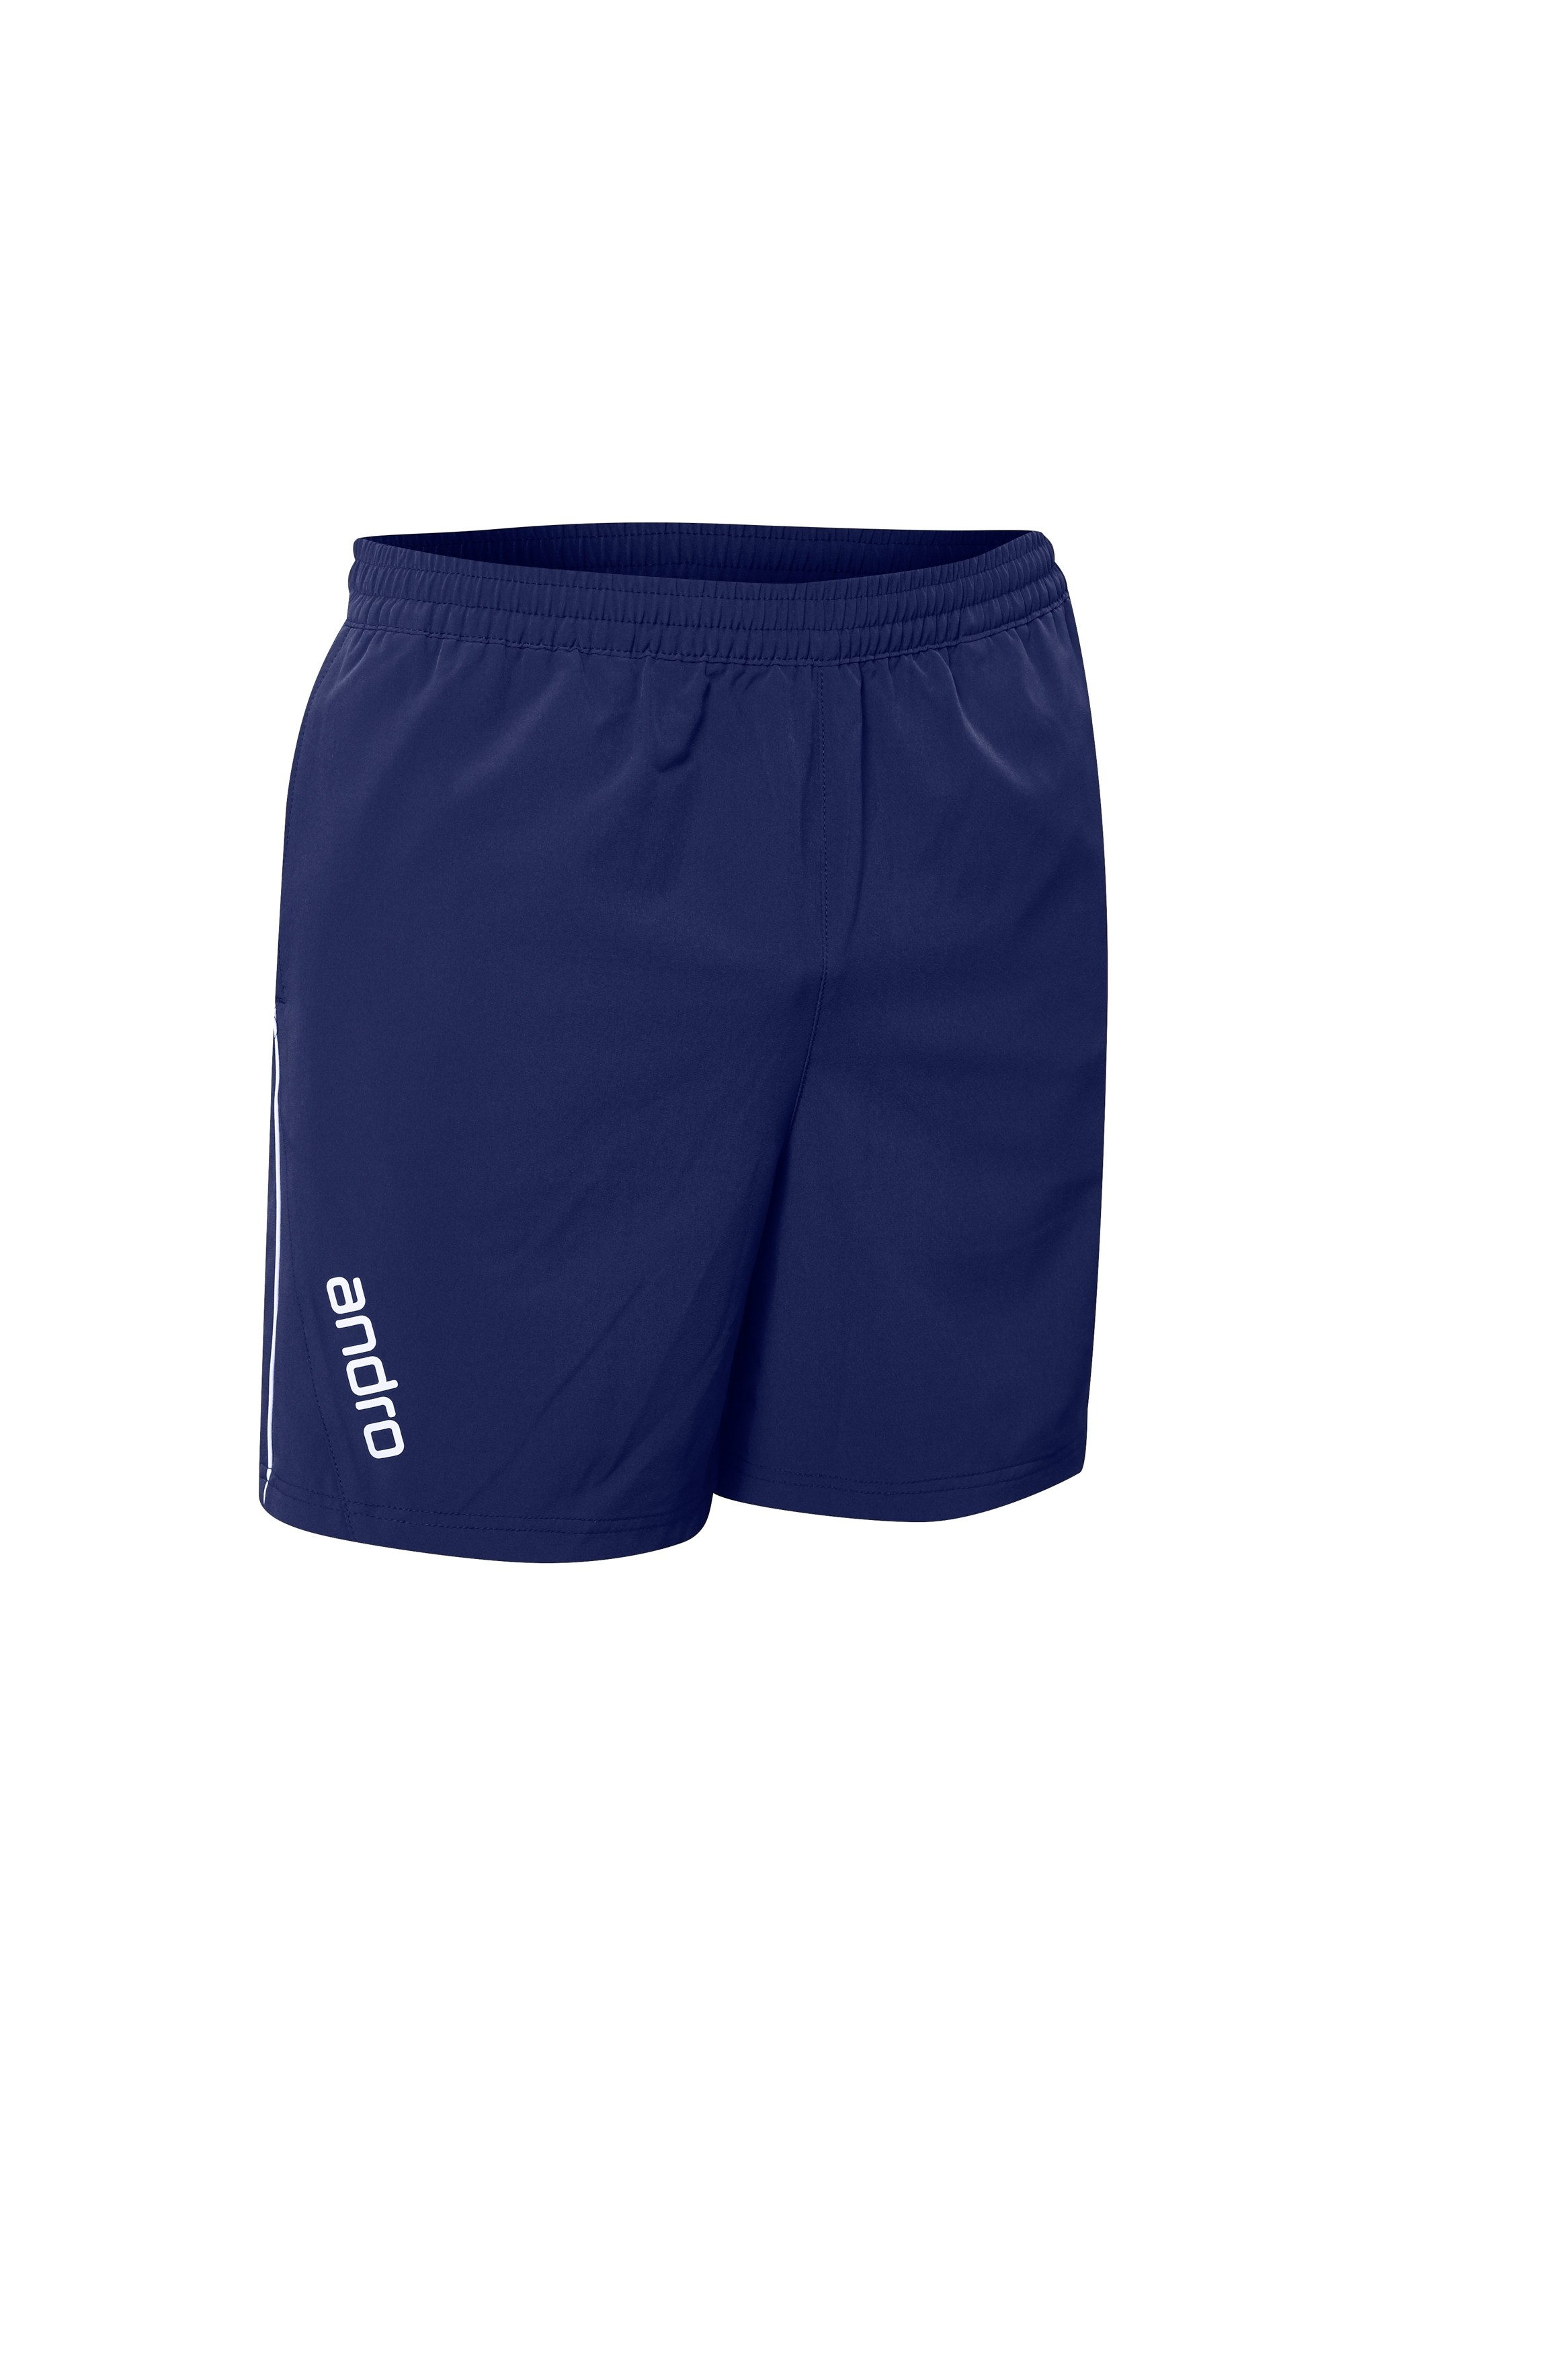 Andro Short OSCAR  Dark Blue / White - Men's